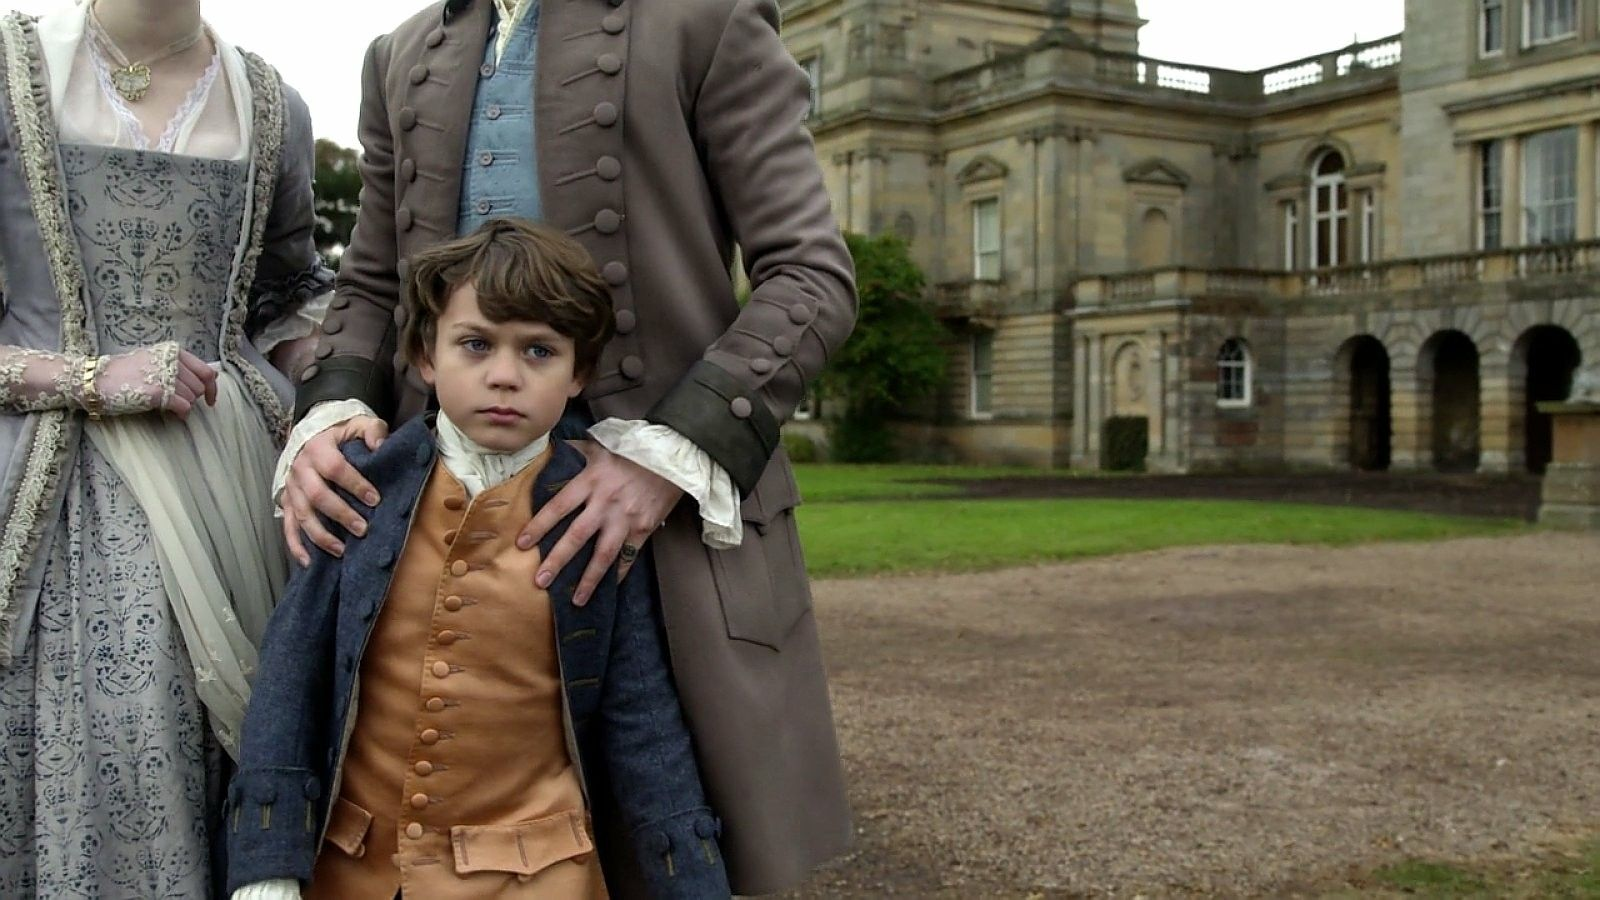 Clark Butler As Willie Of Outlander Starz Season 3 Voyager Episode 304 Of Lost Things At Helwater October 1st Outlander Outlander Show Outlander Season 3